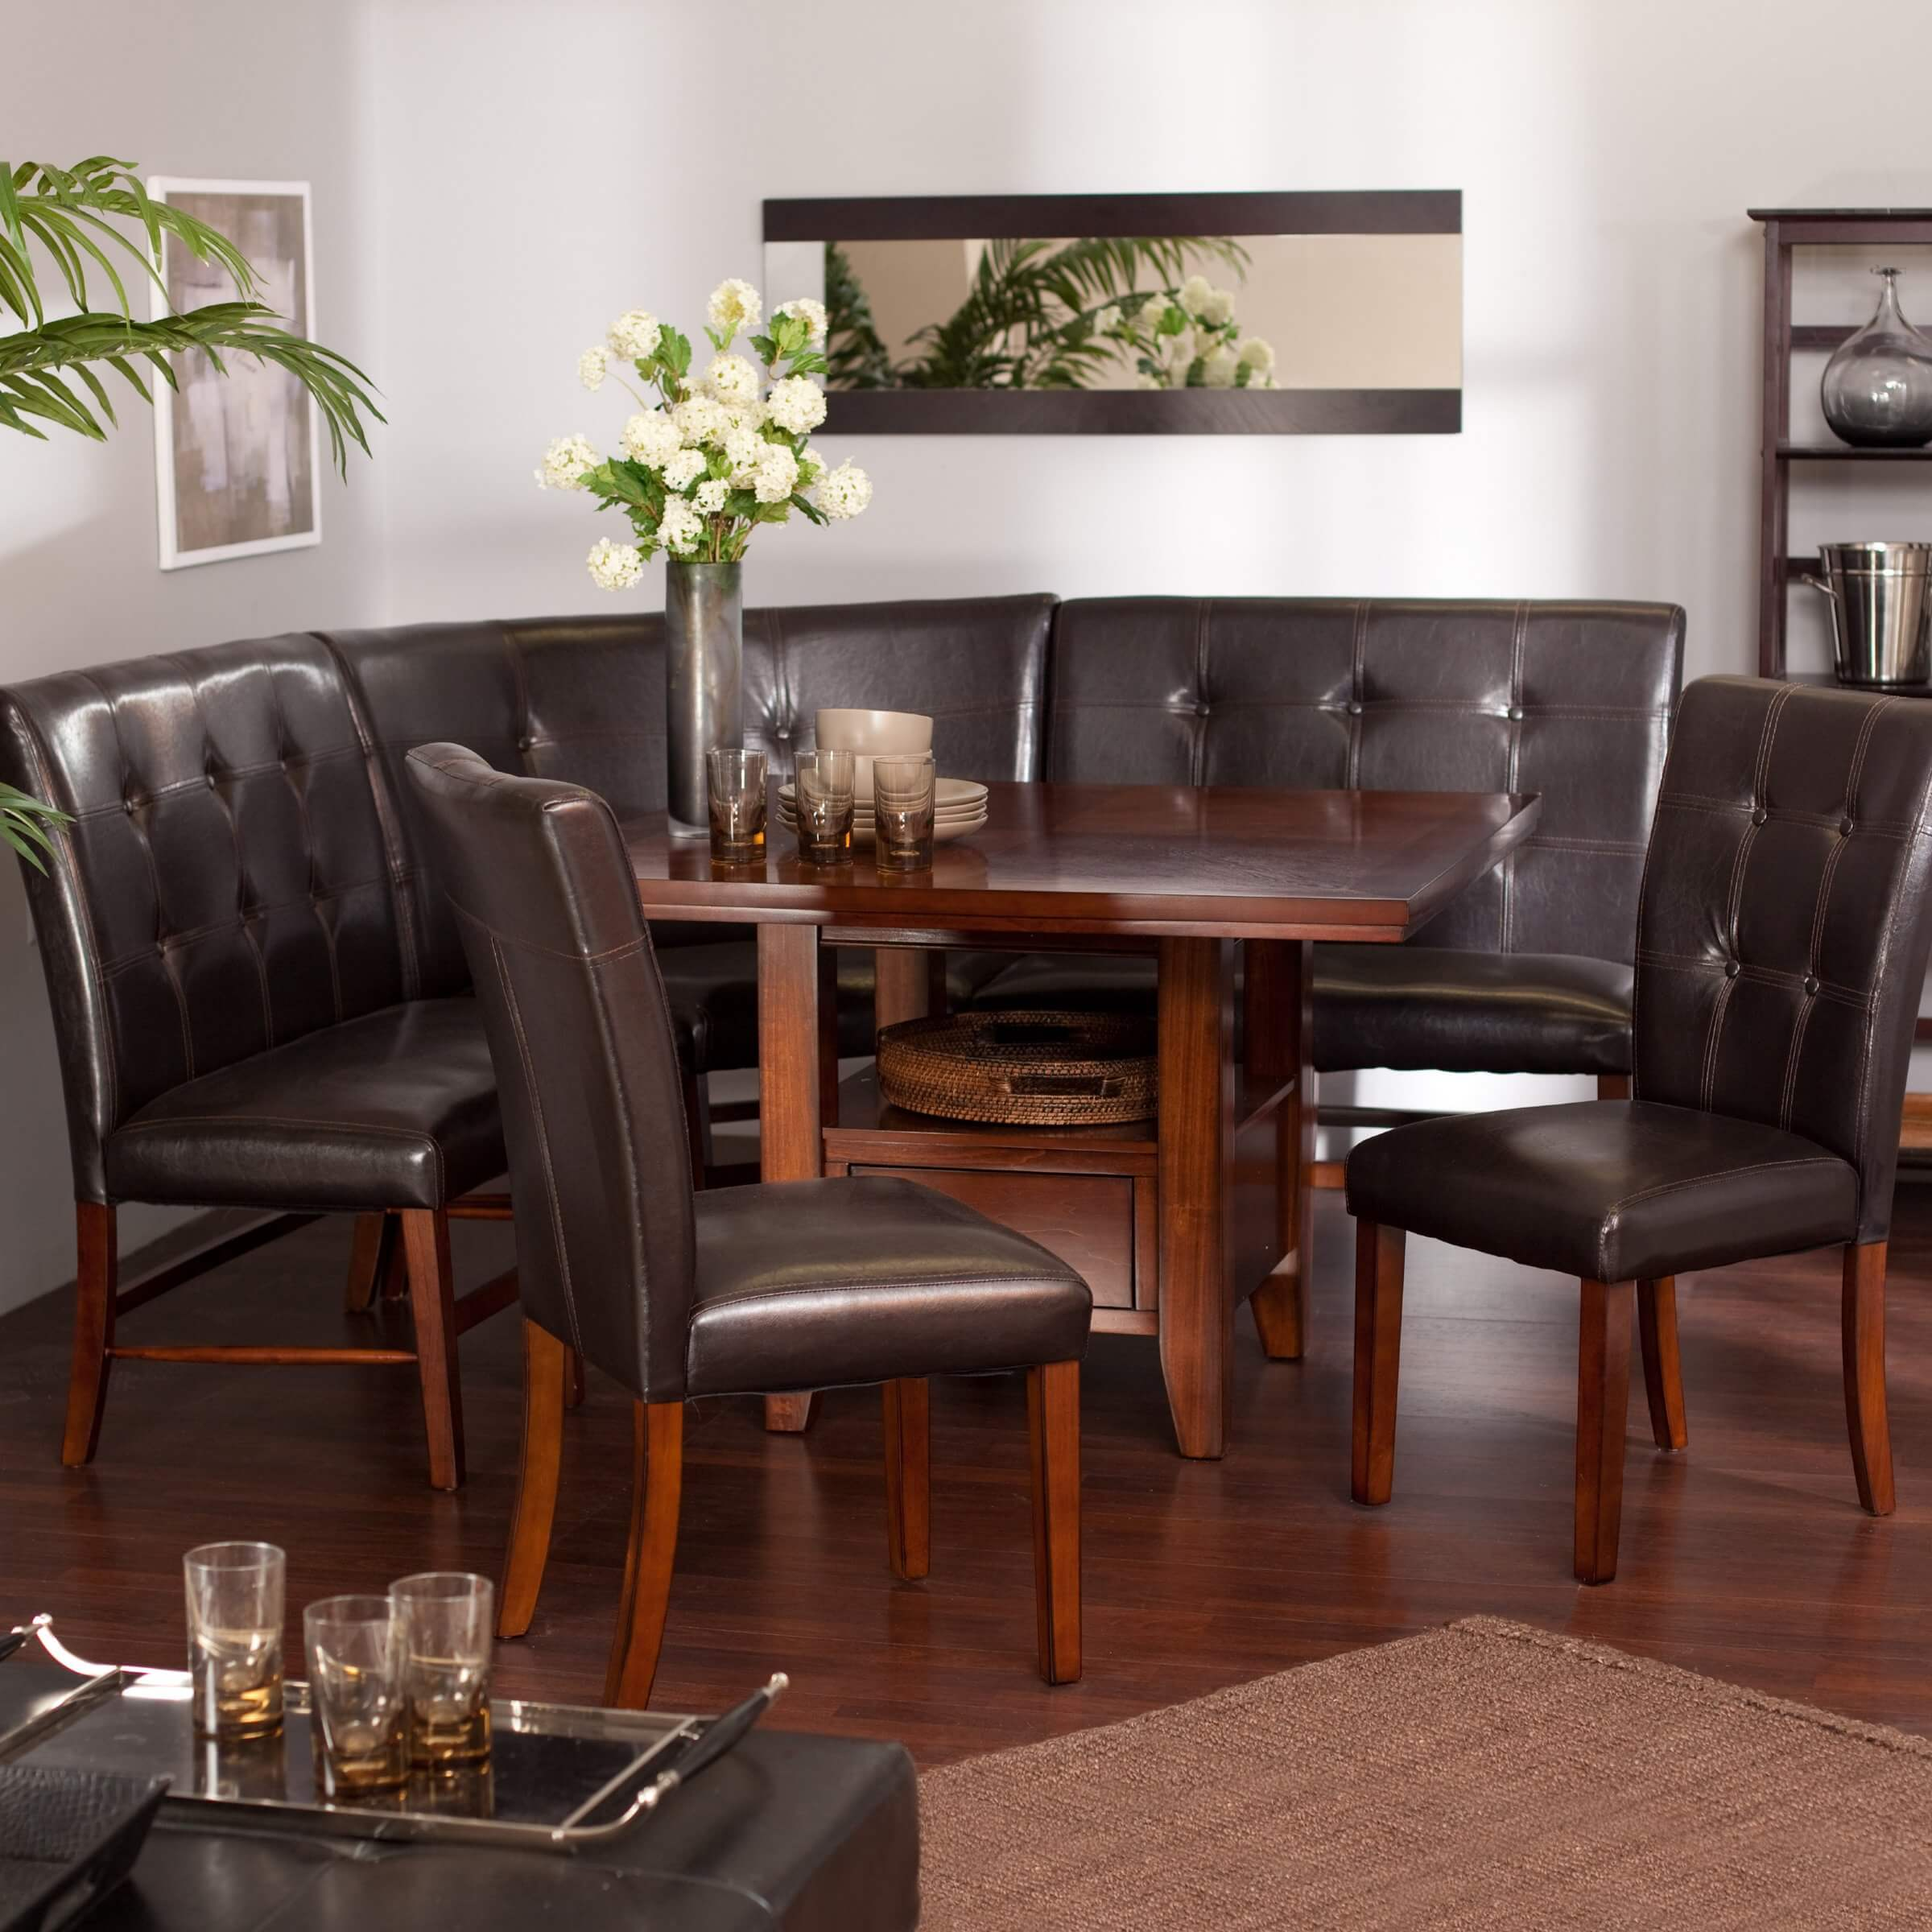 This breakfast nook unit includes the wood table 2 dining benches corner bench and